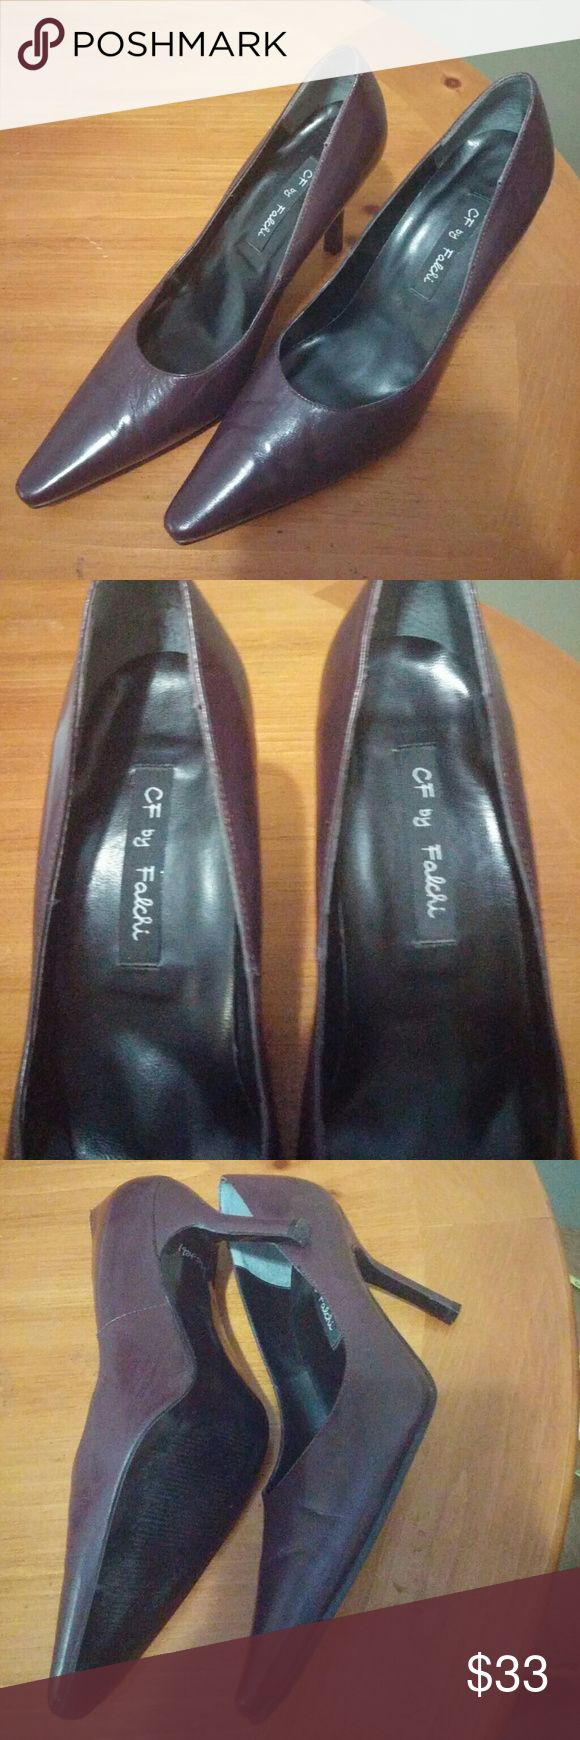 Like new beautiful CF by Falchi deep purple pumps! Carlos Falchi heels with Leather upper and 3.5 inch heel height in excellent condition. Very comfortable just a half size too big for me. Cf by Falchi Shoes Heels